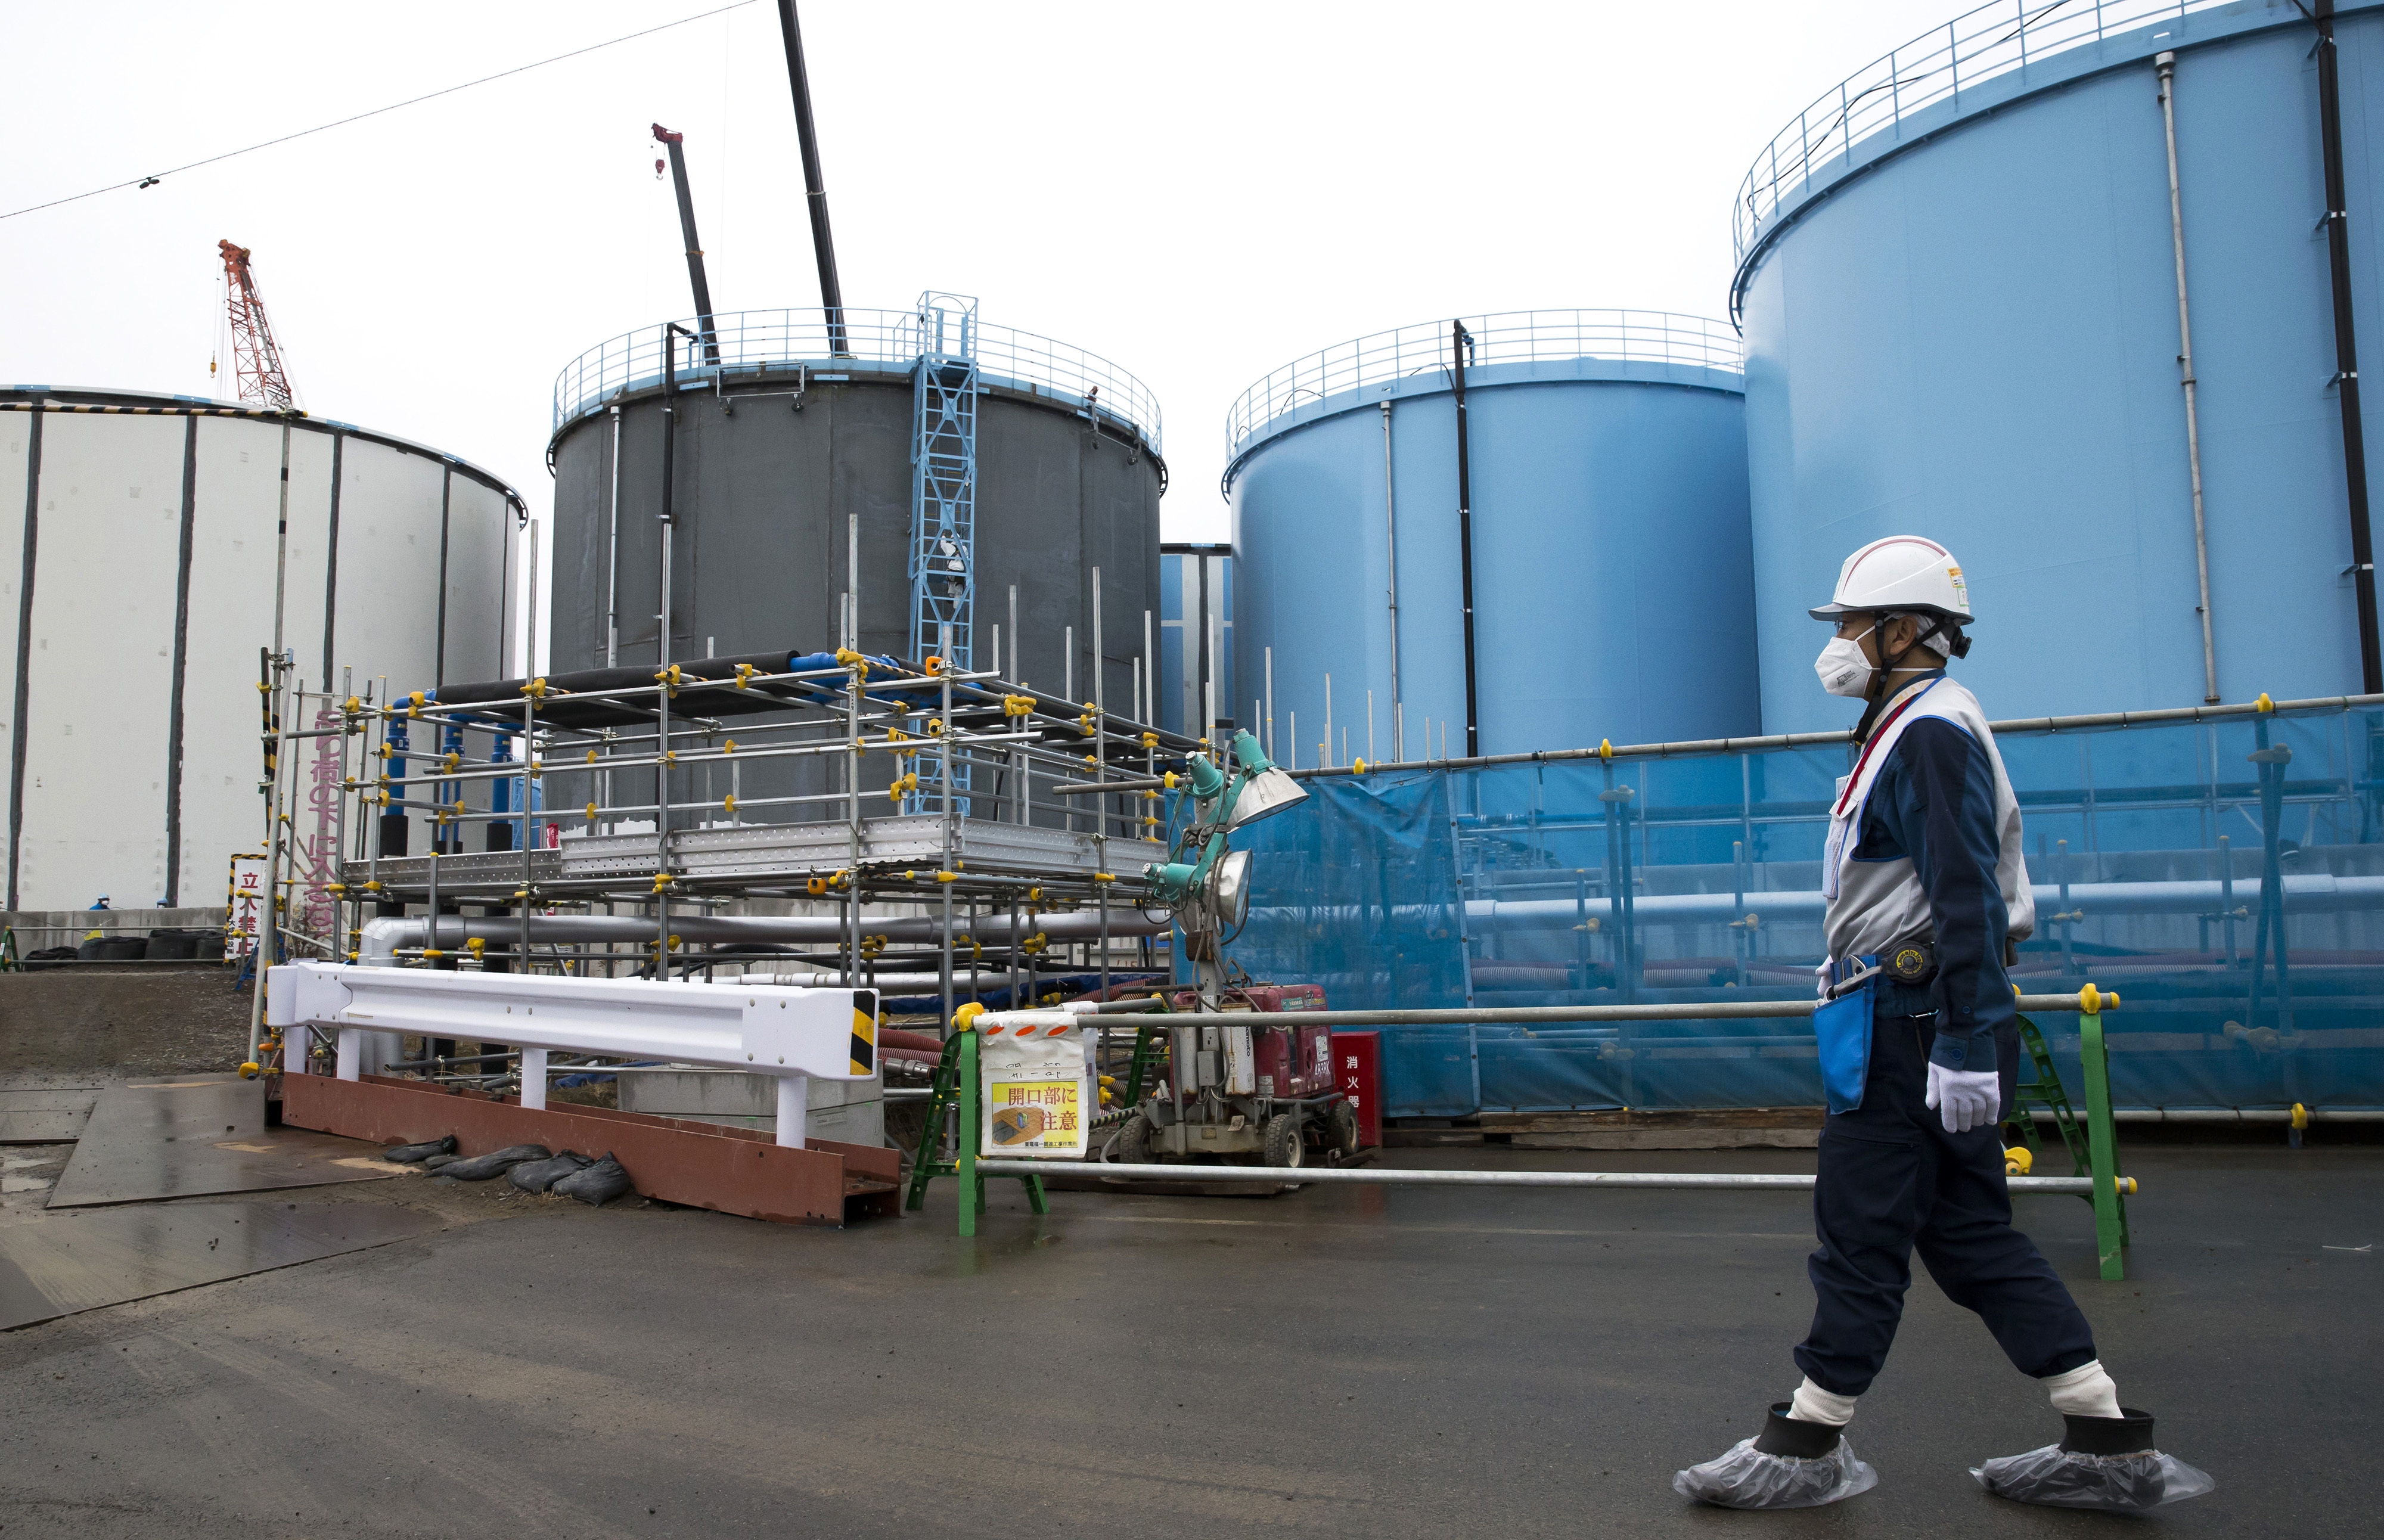 Japan Nuclear-2 FILE - In this Feb. 23, 2017, file photo, an employee walks past storage tanks for contaminated water at the tsunami-crippled Fukushima Dai-ichi nuclear power plant of the Tokyo Electric Power Co. (TEPCO) in Okuma town, Fukushima prefecture, Japan. Massive amounts of radiation-contaminated water that has been processed and stored in hundreds of tanks at the plant are hindering decommissioning work and pose a safety risk in case another massive quake or tsunami strikes. TEPCO needs to release the water - which contains radioactive tritium that is not removable but considered not harmful in small amounts - into the Pacific Ocean, TEPCO's new Chairman Takashi Kawamura said. (Tomohiro Ohsumi/Pool Photo via AP, File)